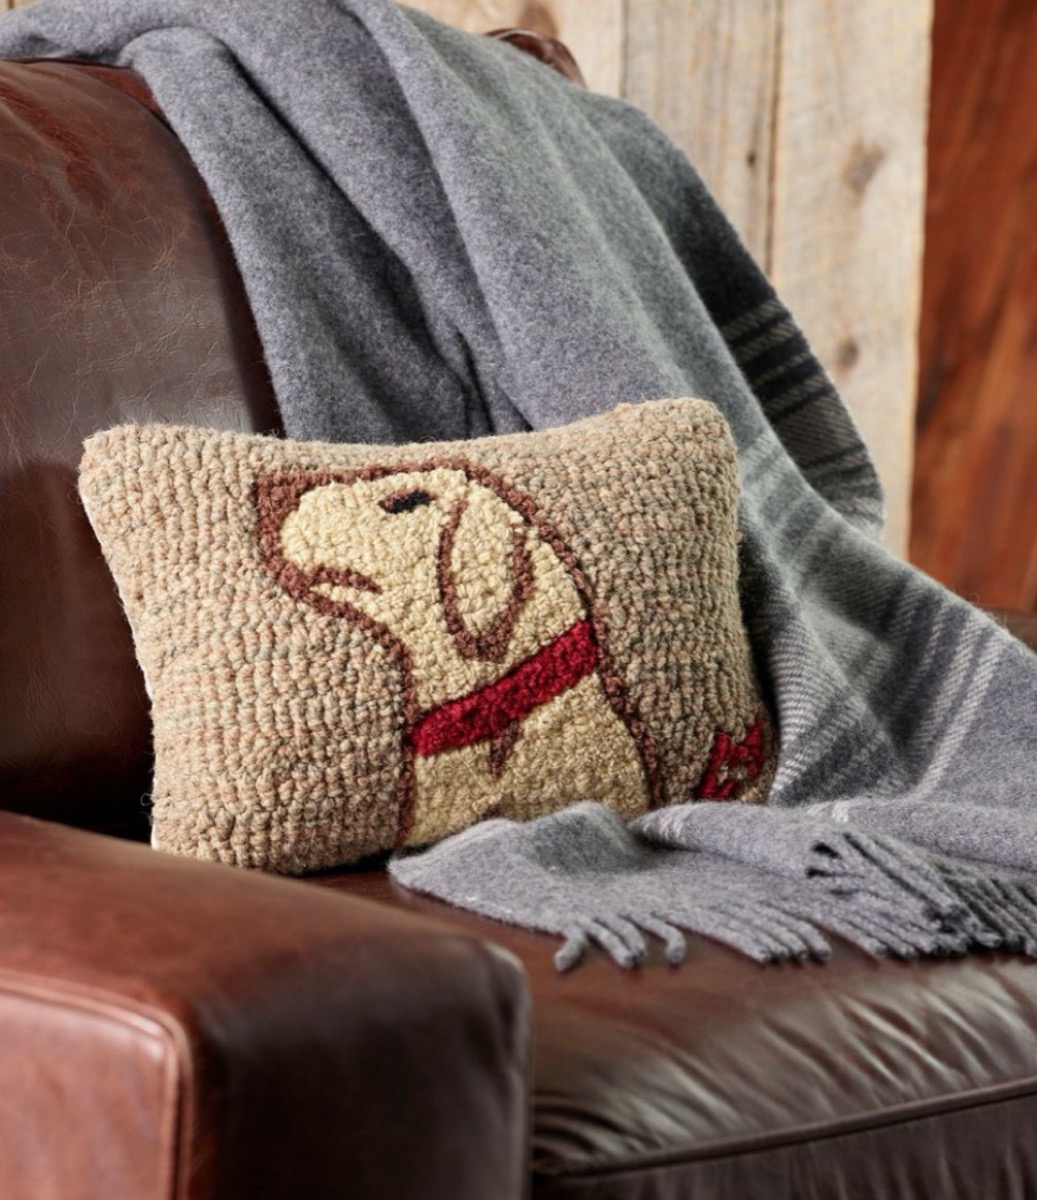 needlepoint pillow with yellow labrador in profile